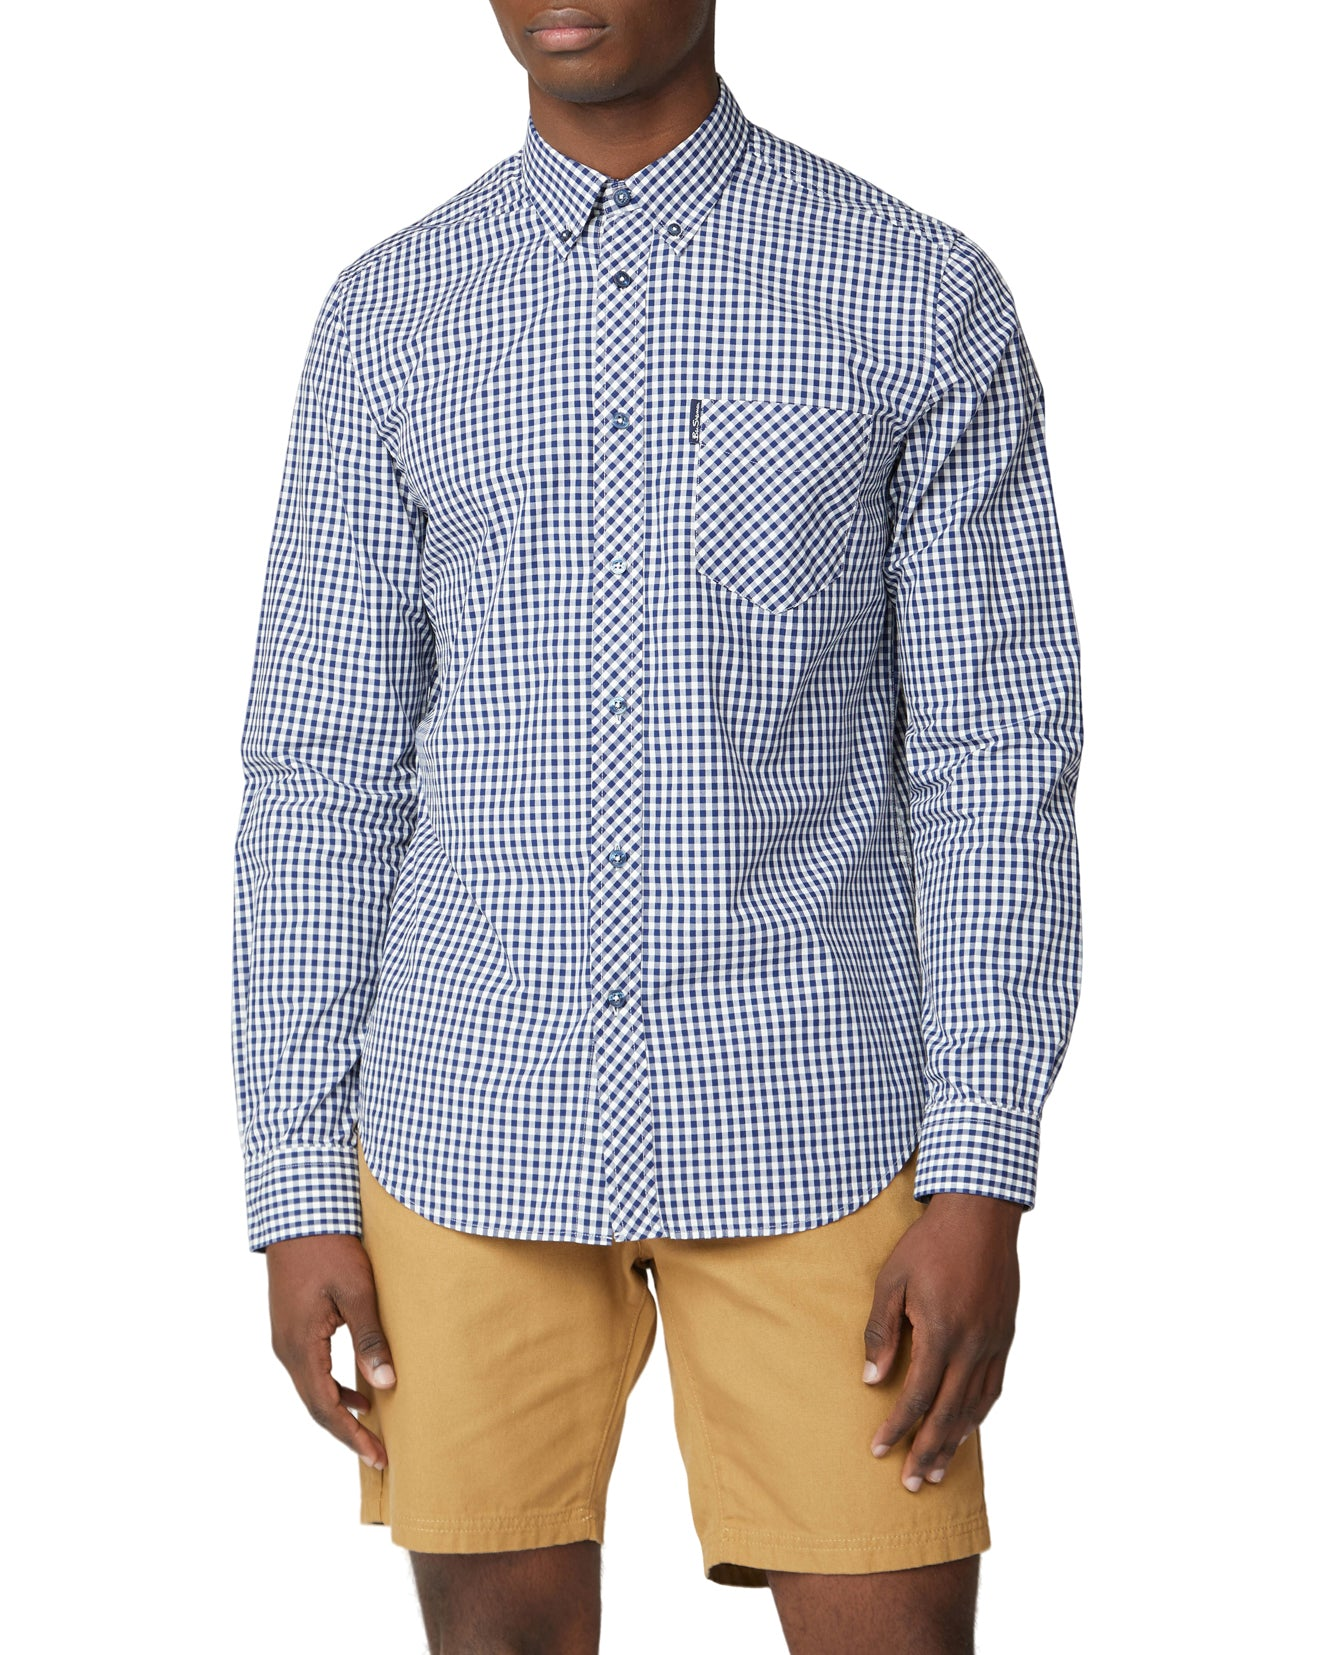 Long-Sleeve Signature Gingham Shirt - Dark Blue